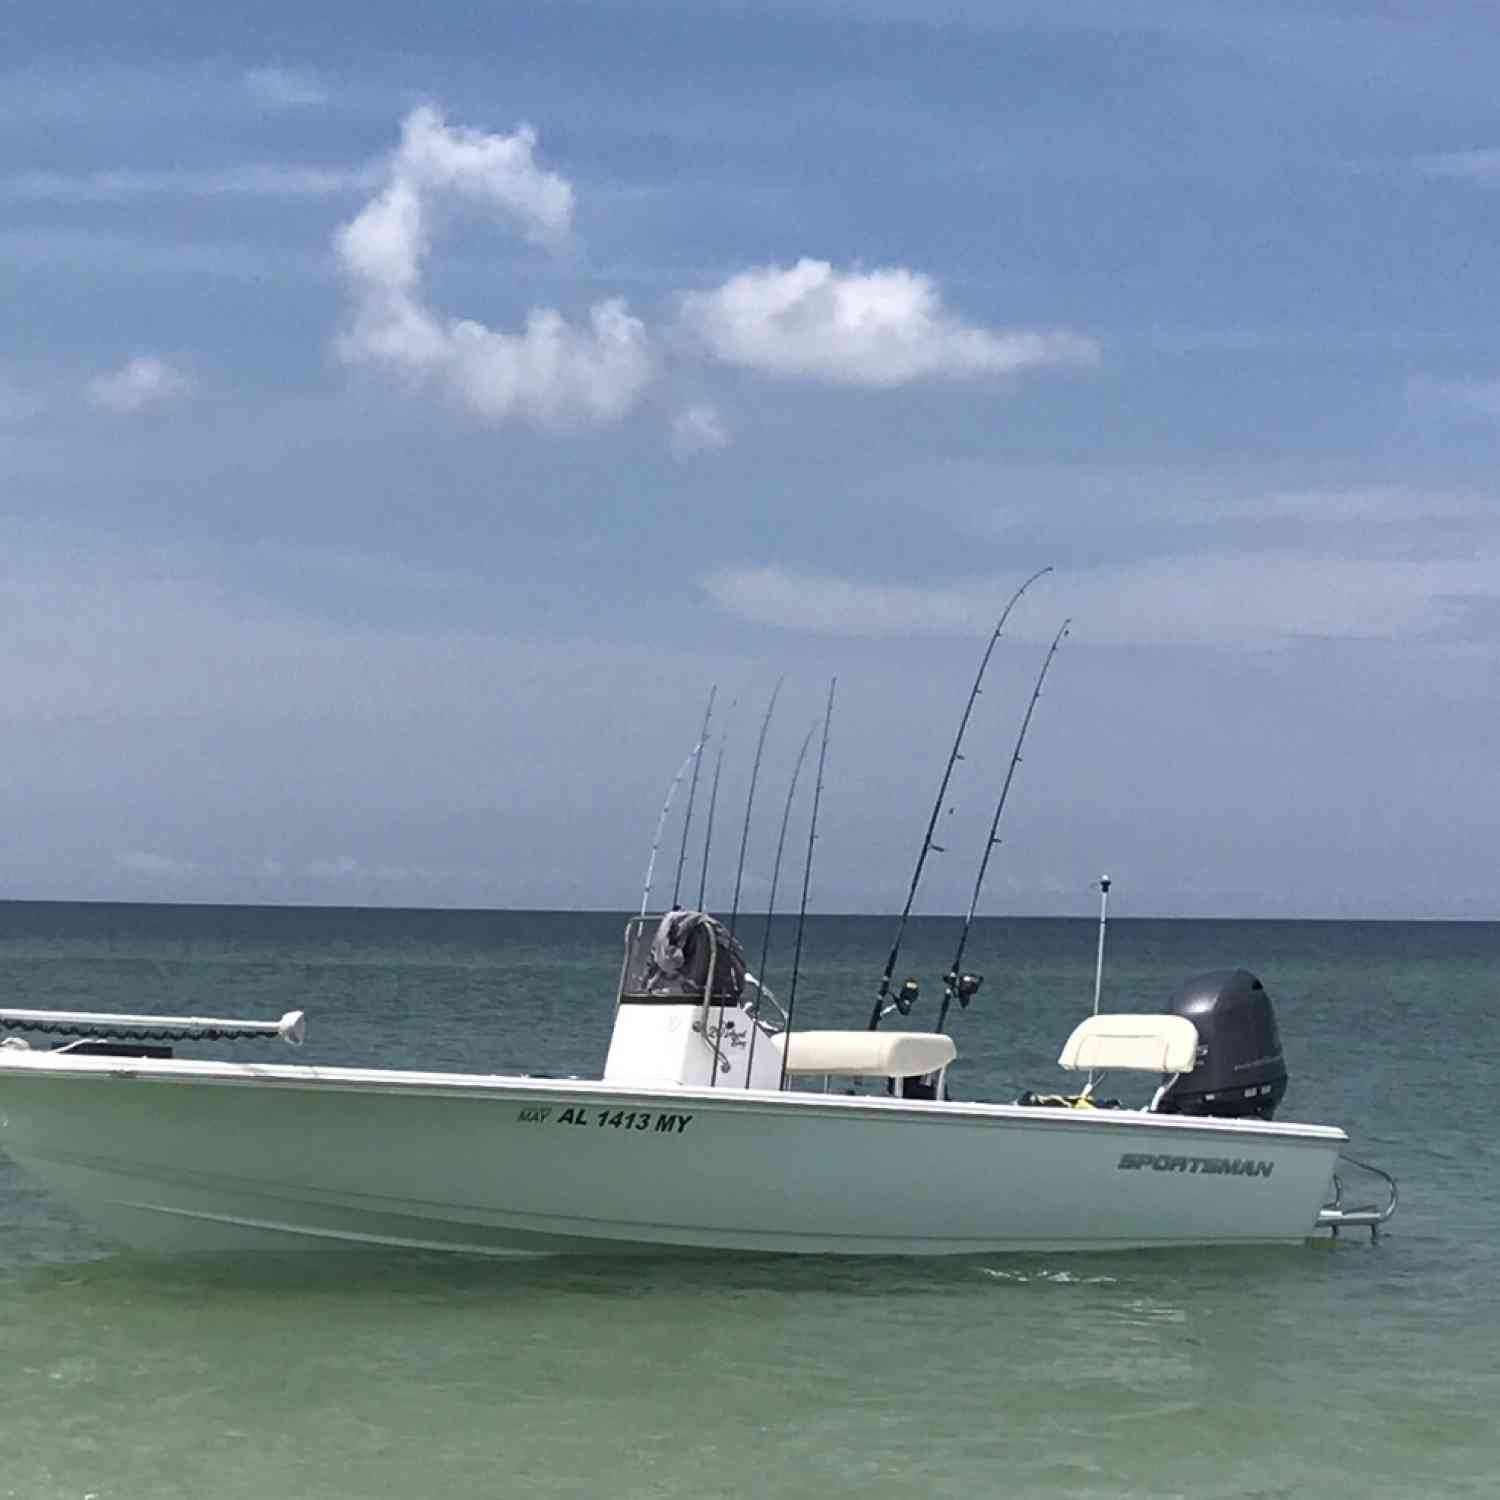 Title: Island off of an Island - On board their Sportsman Island Bay 20 Bay Boat - Location: Panama City Florida. Participating in the Photo Contest #SportsmanJuly2018